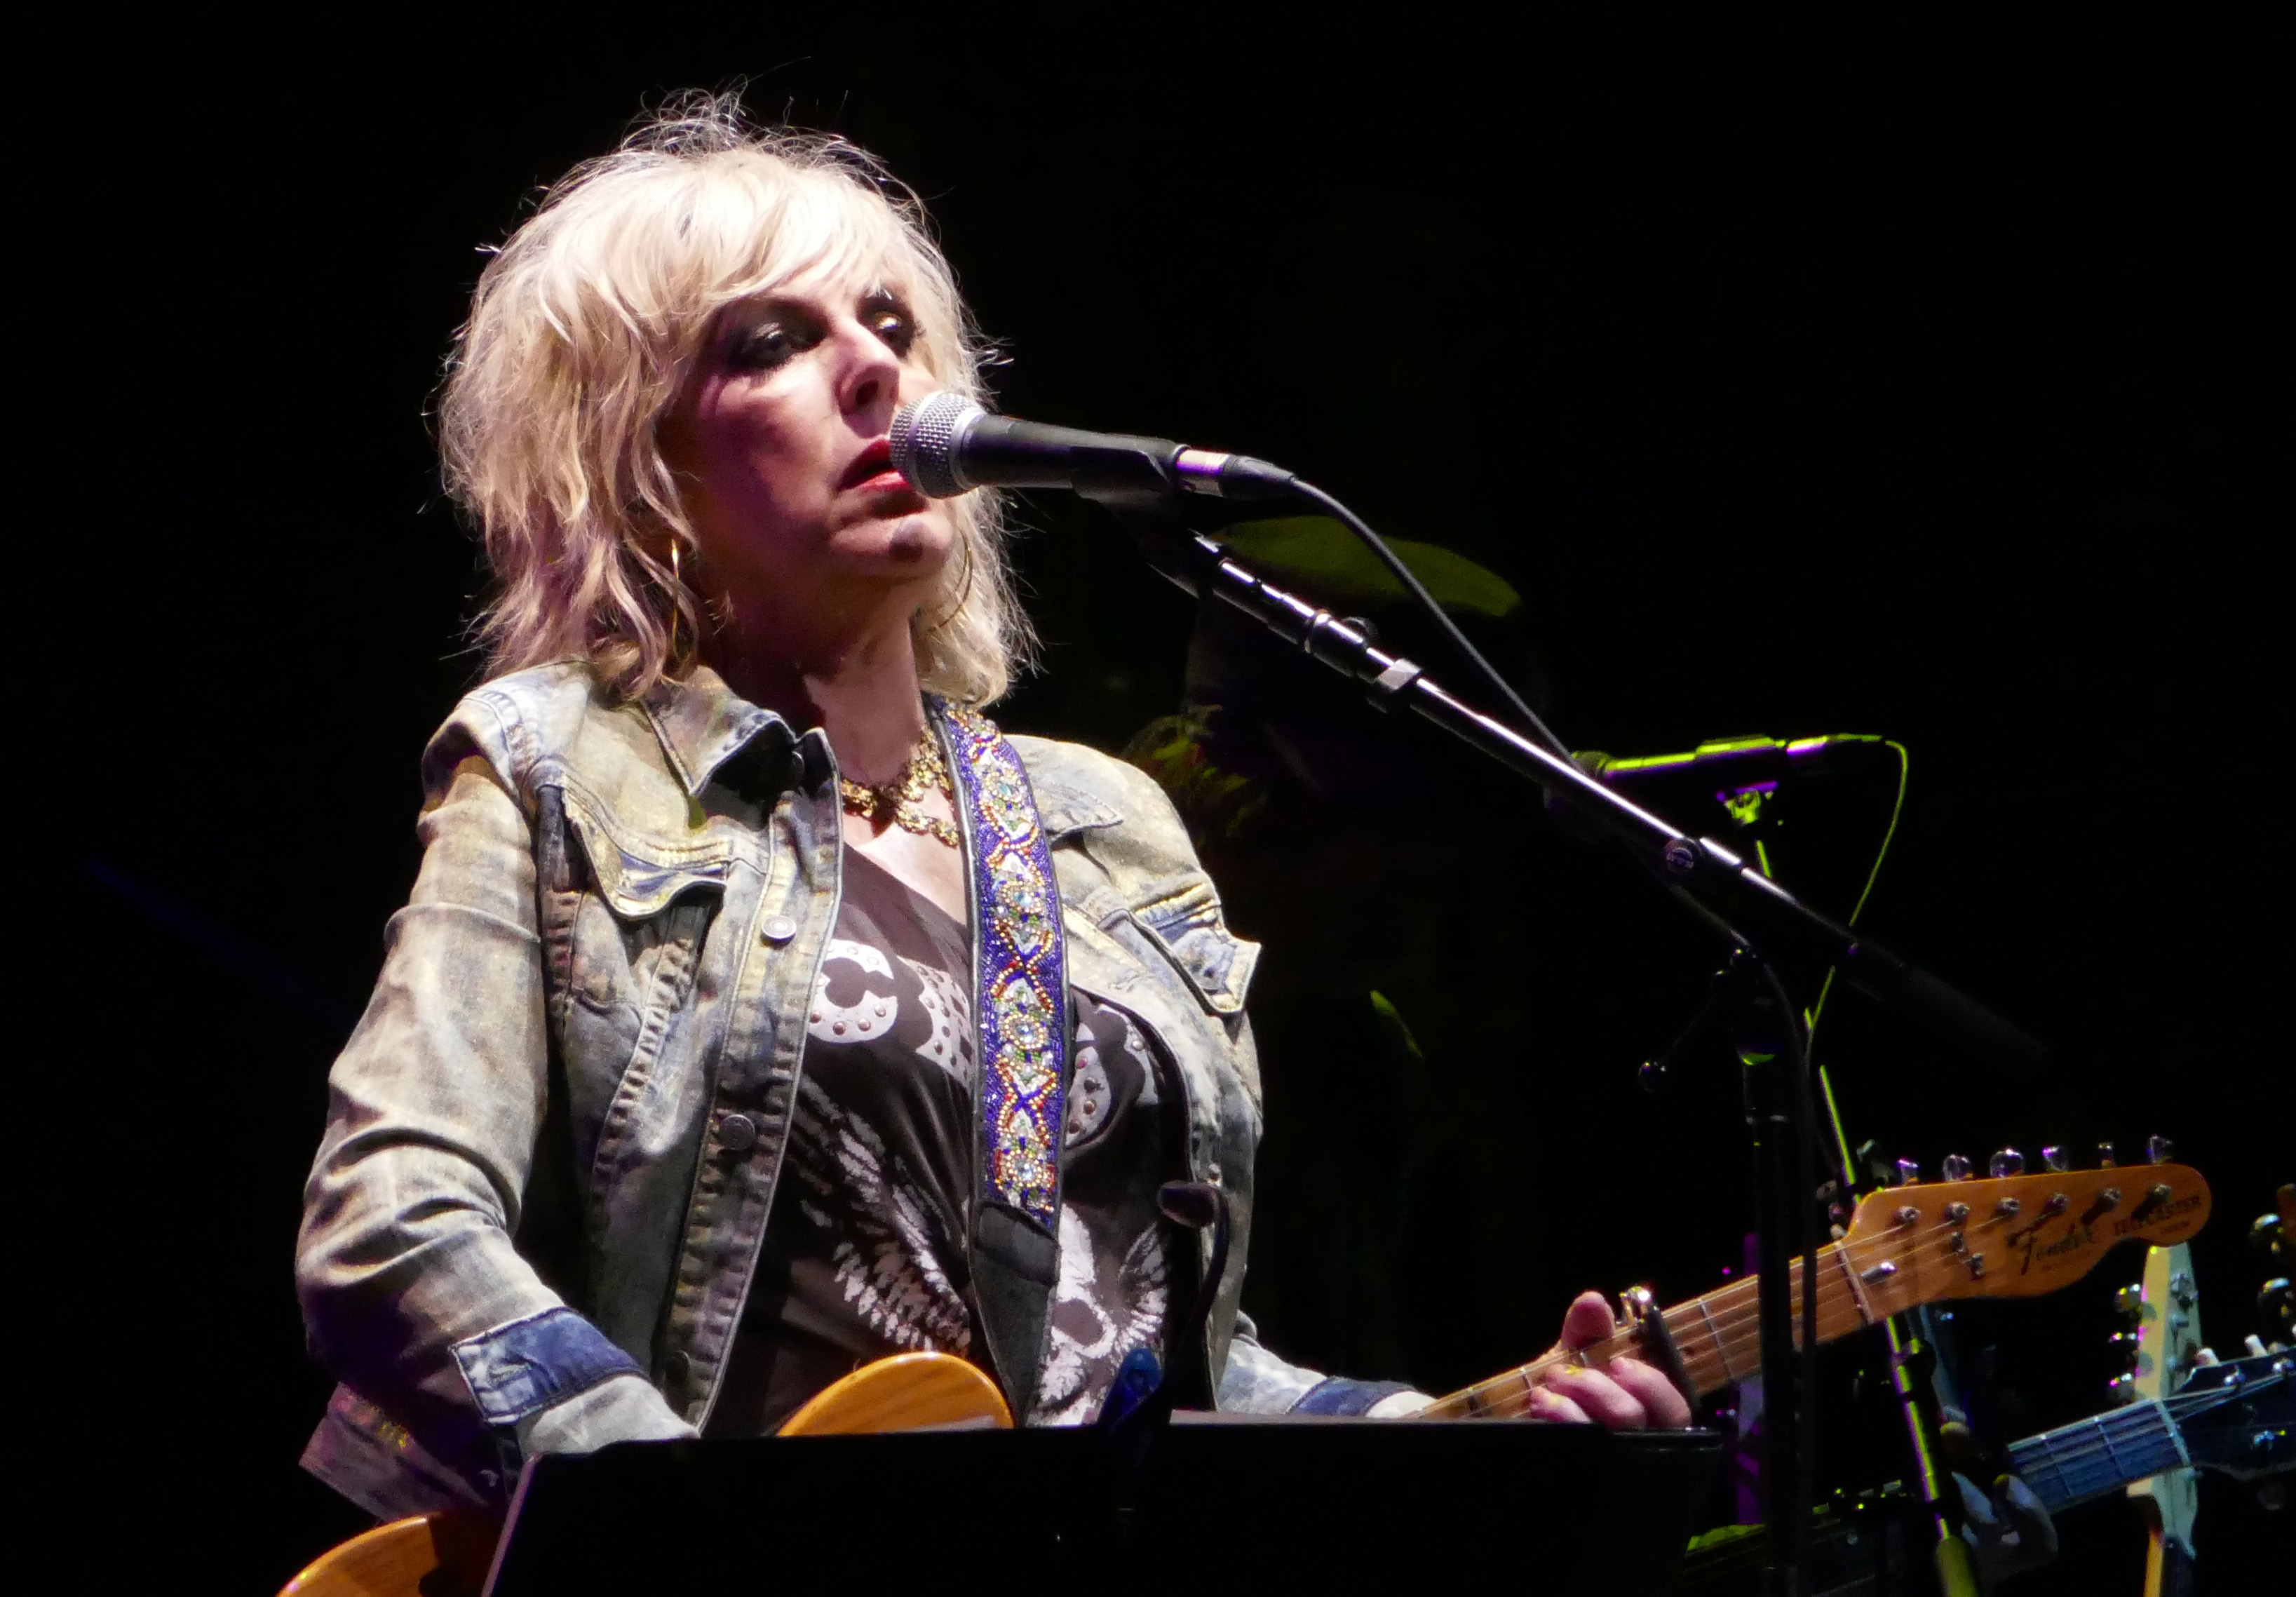 June 13 – NYC – Lucinda Williams sings the blues better than anyone on stage at the Beacon Theatre.